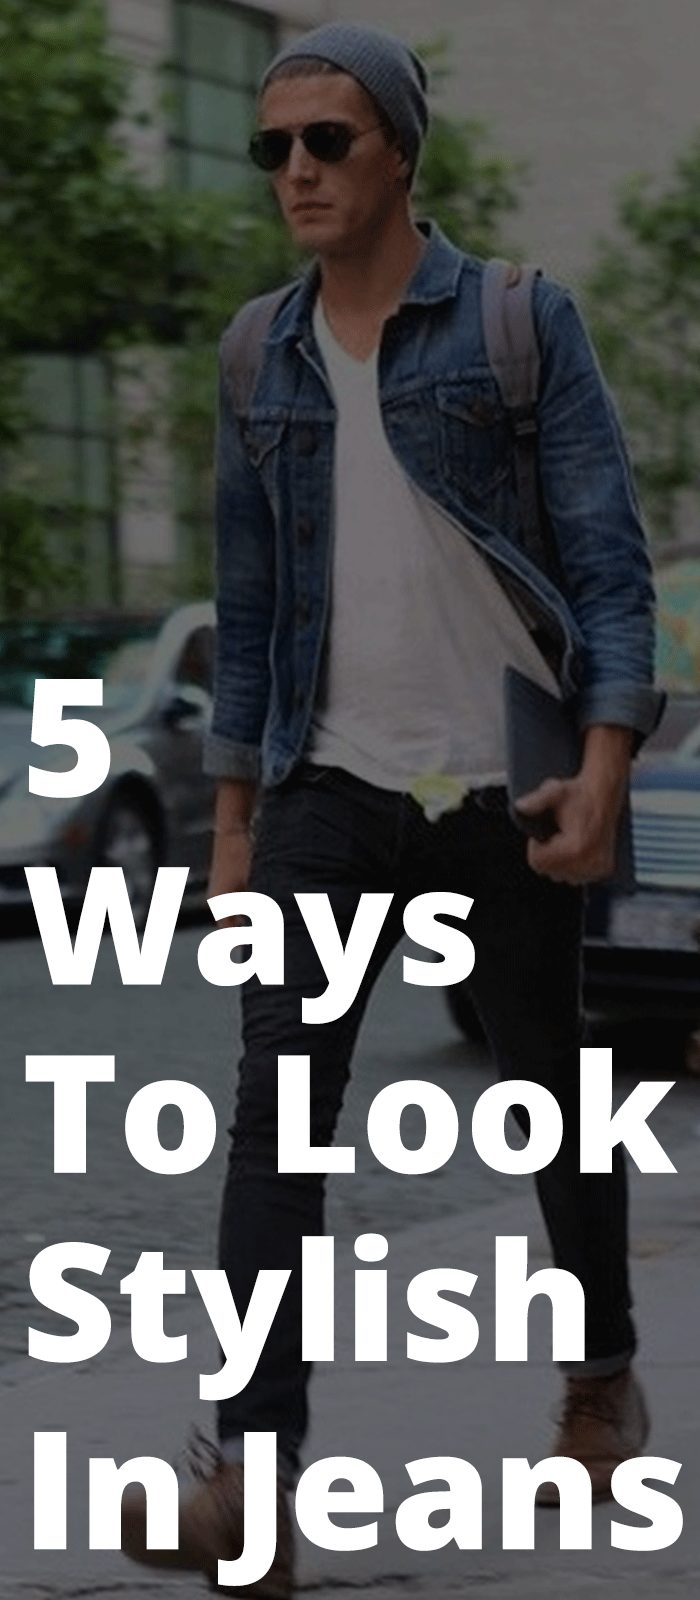 5 Ways To Look Stylish In Jeans